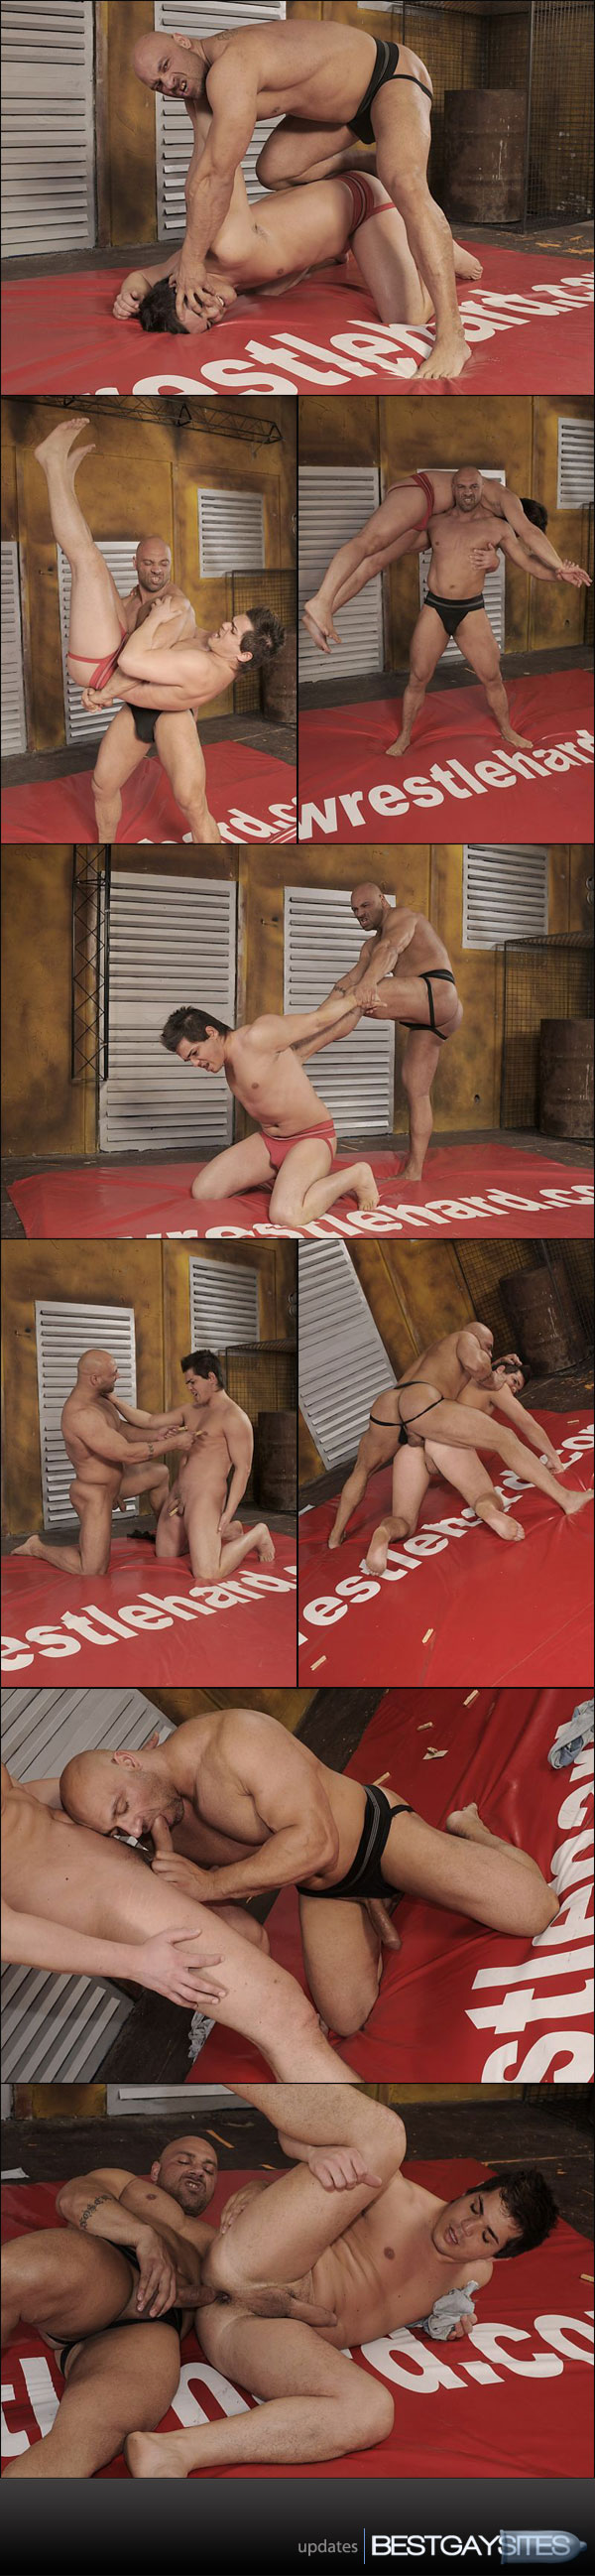 The bulging muscle-man battles David in a rip-n-strip wrestling match, ...